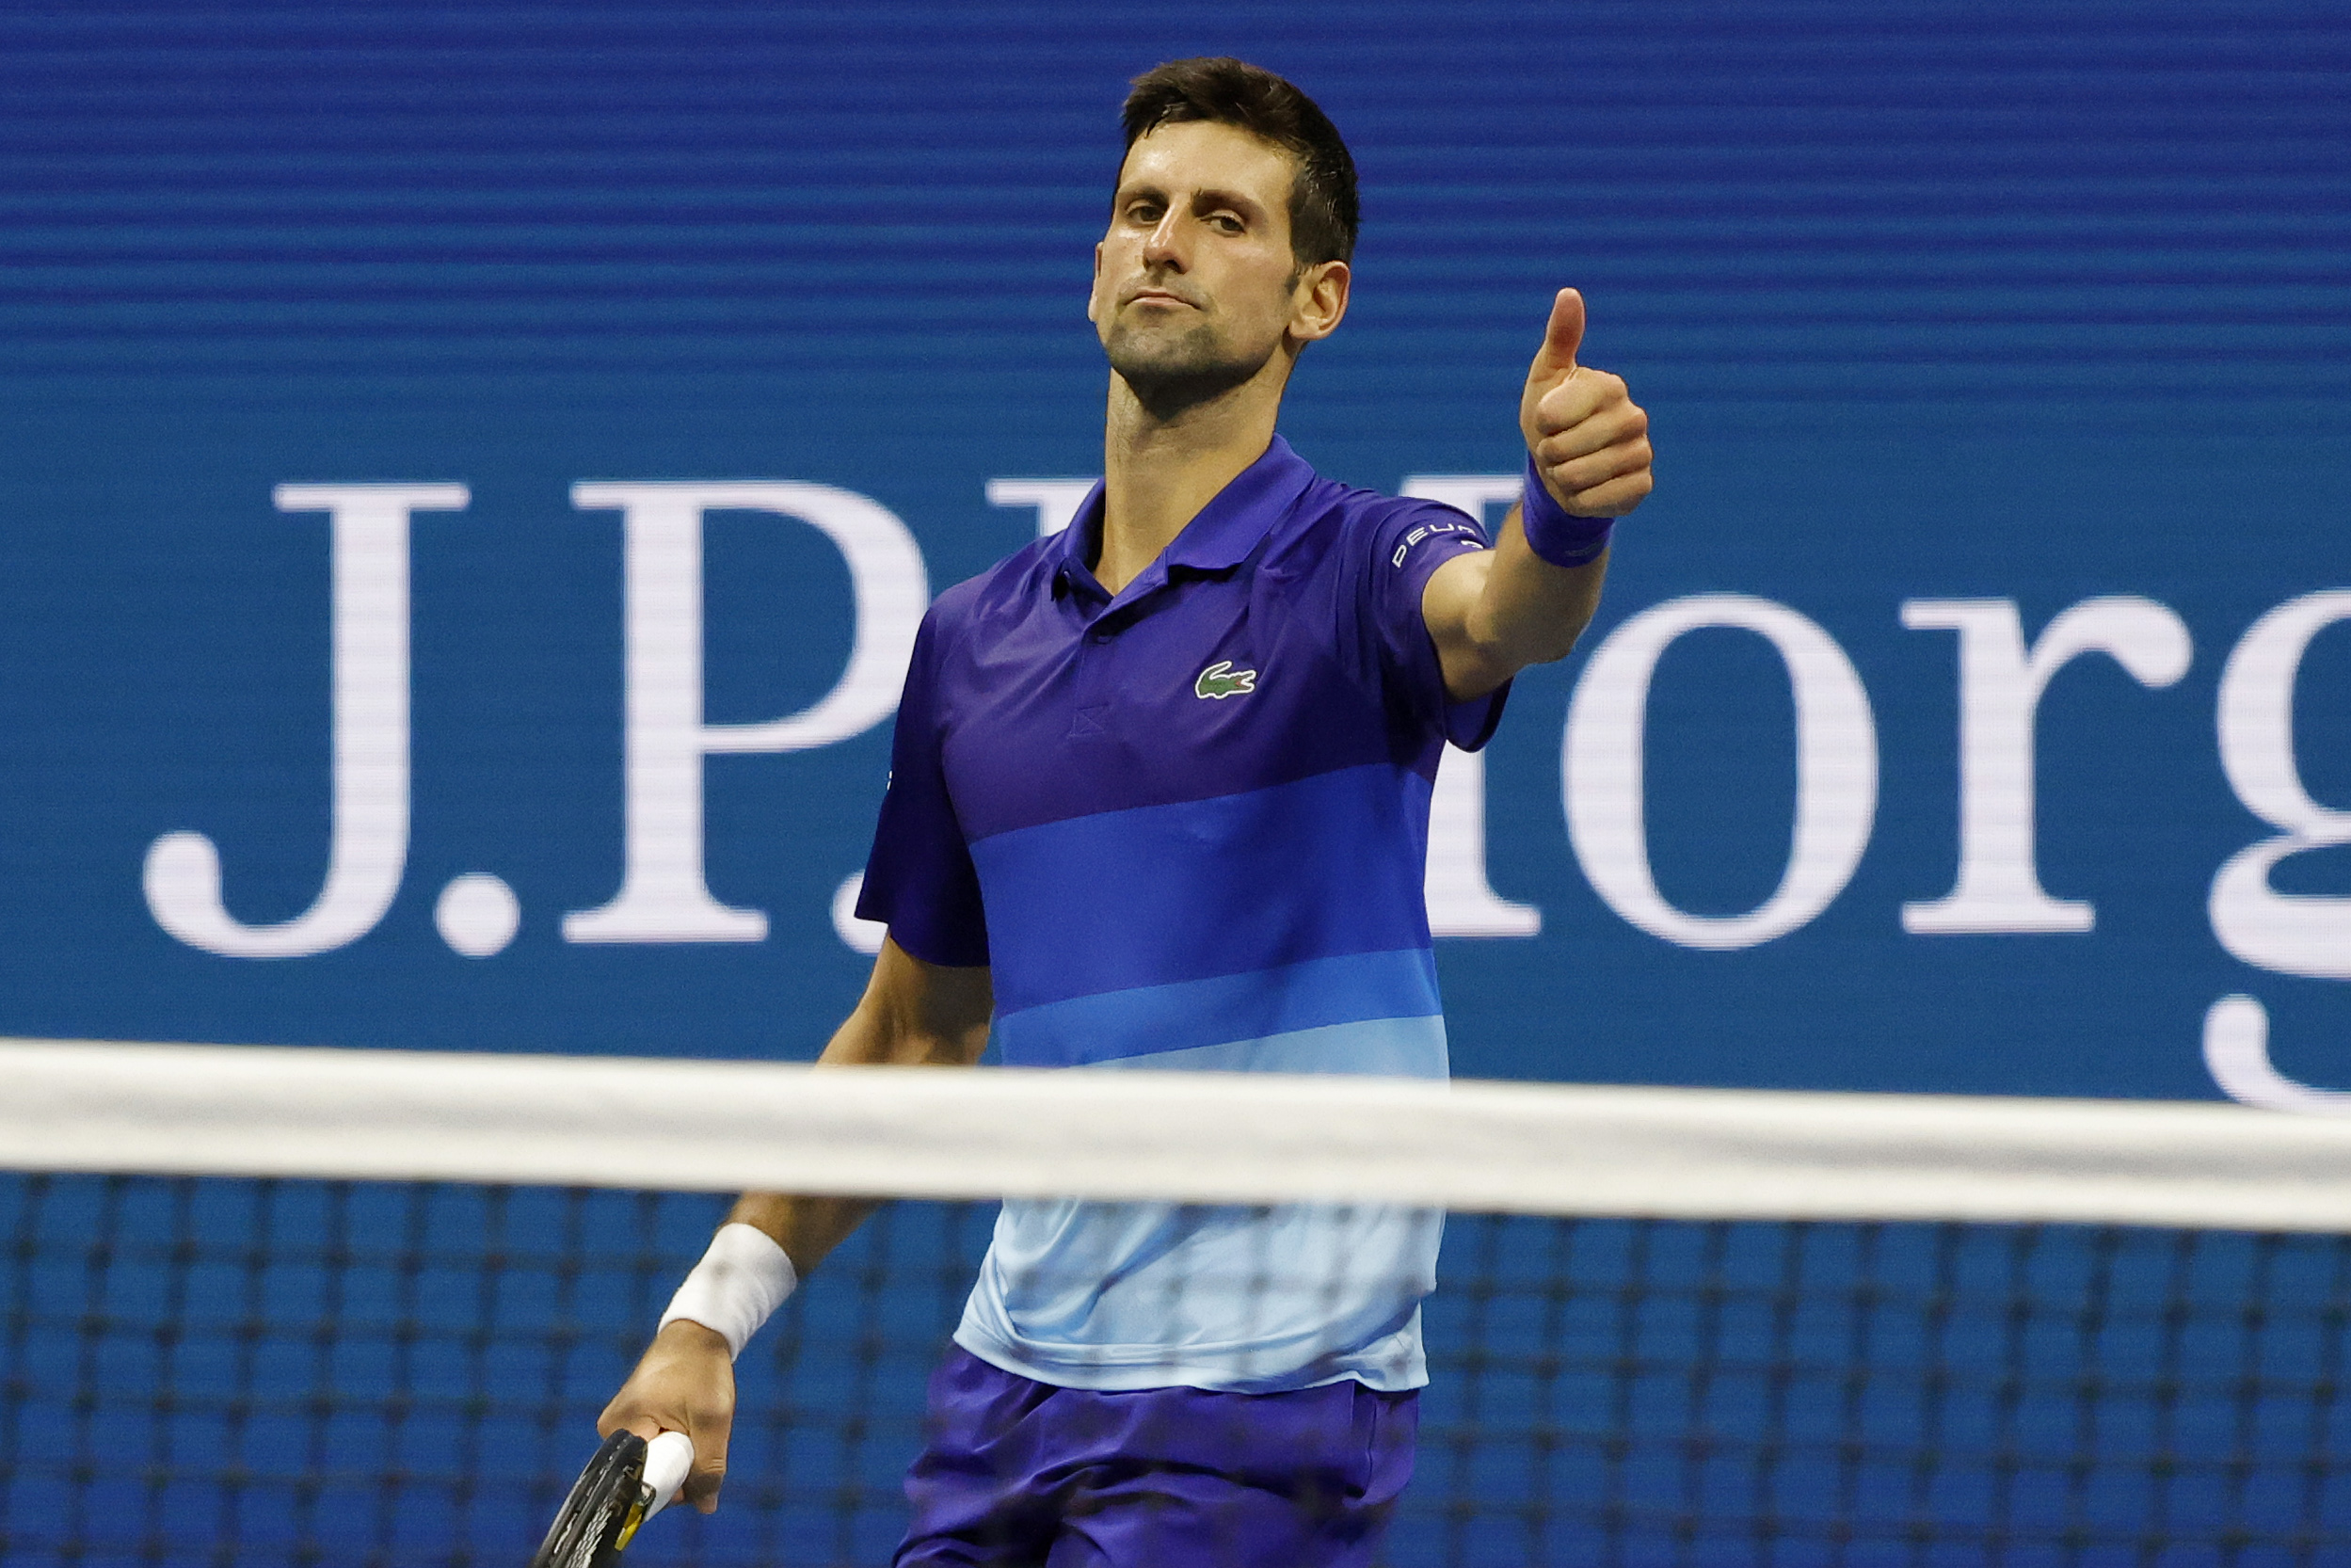 Sep 6, 2021; Flushing, NY, USA; Novak Djokovic of Serbia gestures after a point against Jenson Brooksby of the United States (not pictured) on day eight of the 2021 U.S. Open tennis tournament at USTA Billie Jean King National Tennis Center. Mandatory Credit: Geoff Burke-USA TODAY Sports